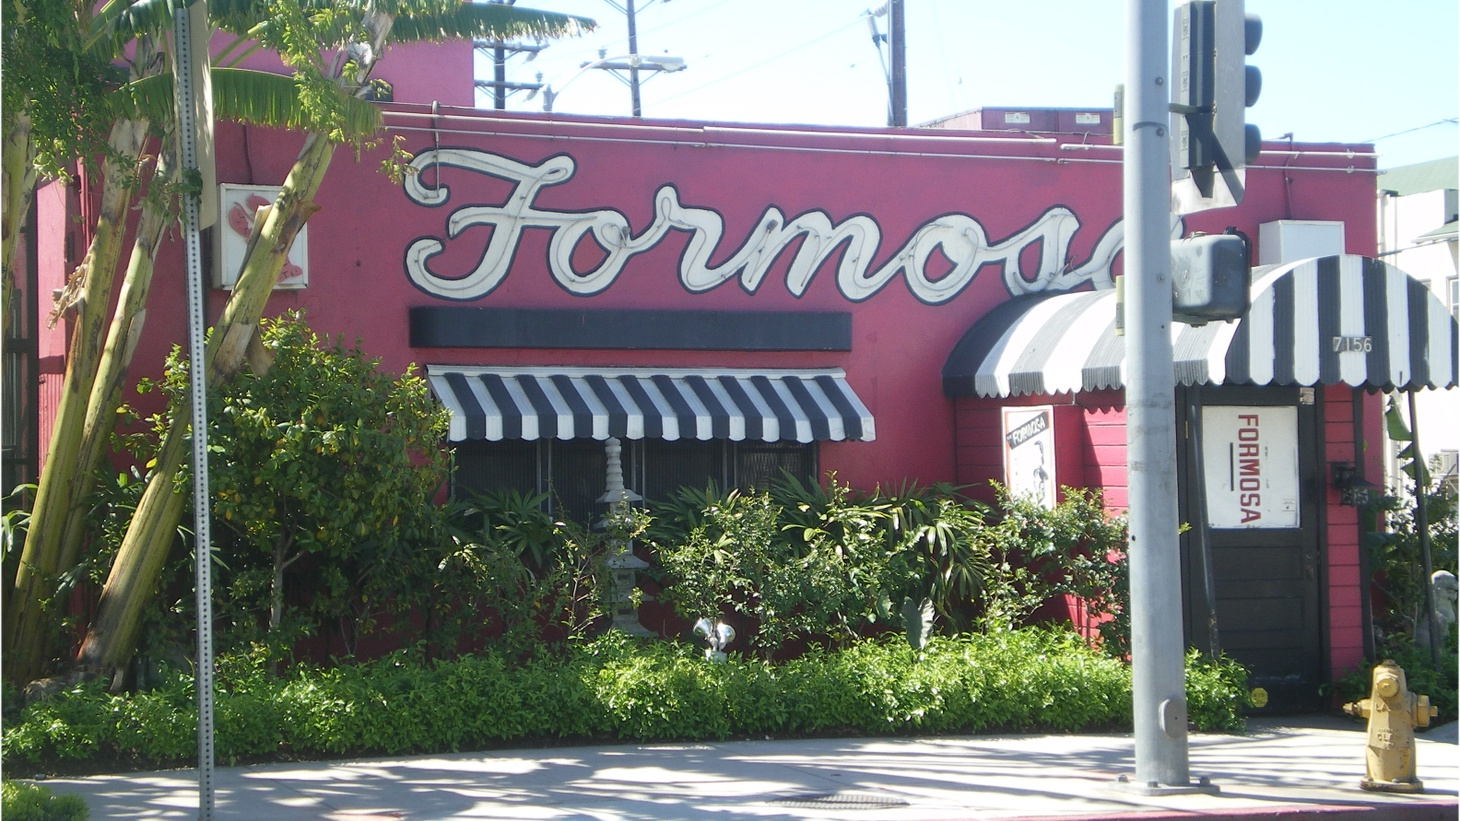 The Formosa Cafe on Santa Monica Boulevard.